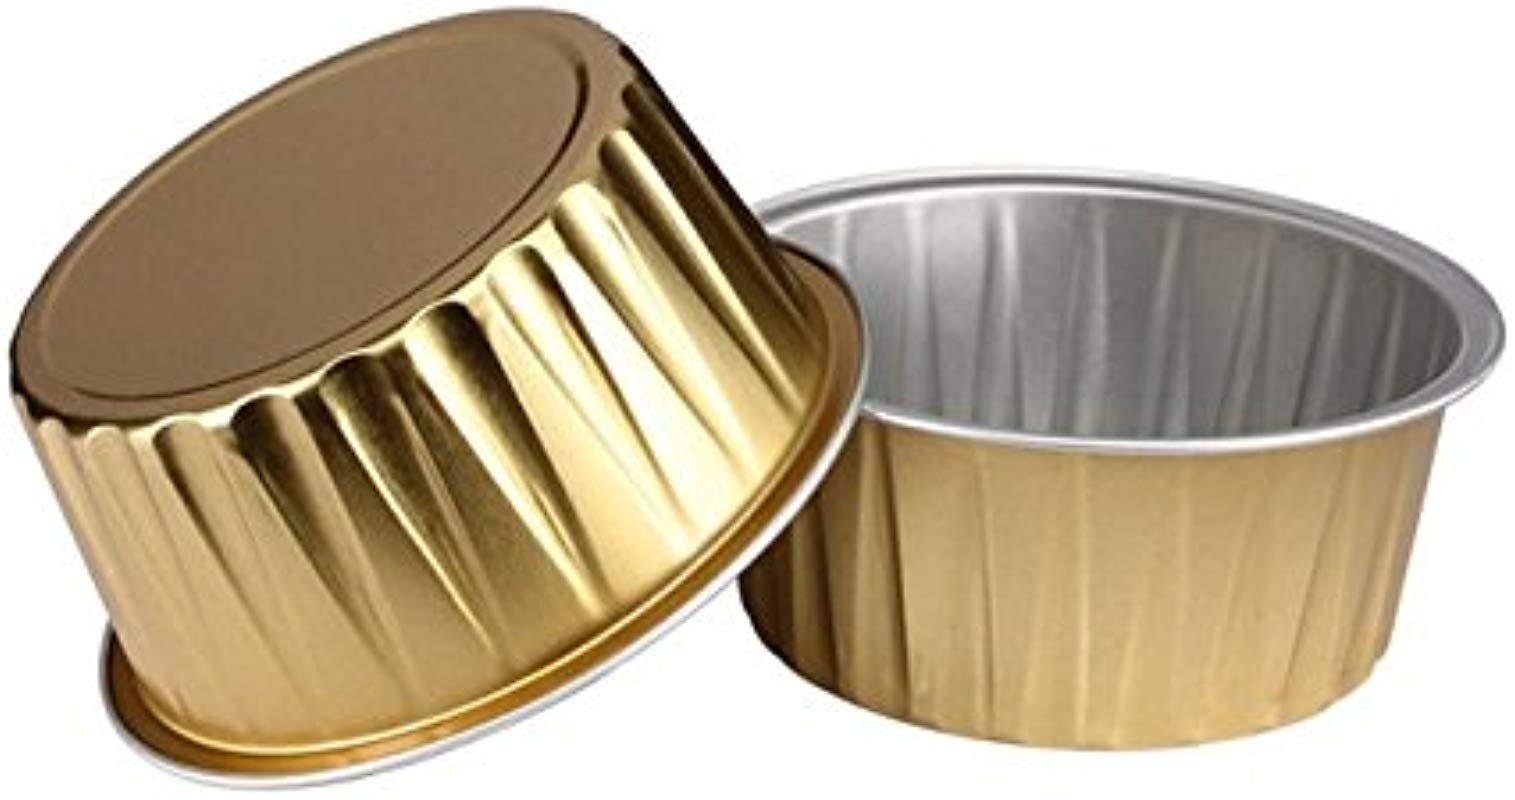 KEISEN 3 2 5 Mini Disposable Aluminum Foil Cups 125ml 100 PK 4OZ For Muffin Cupcake Baking Bake Utility Ramekin Cup GOLD